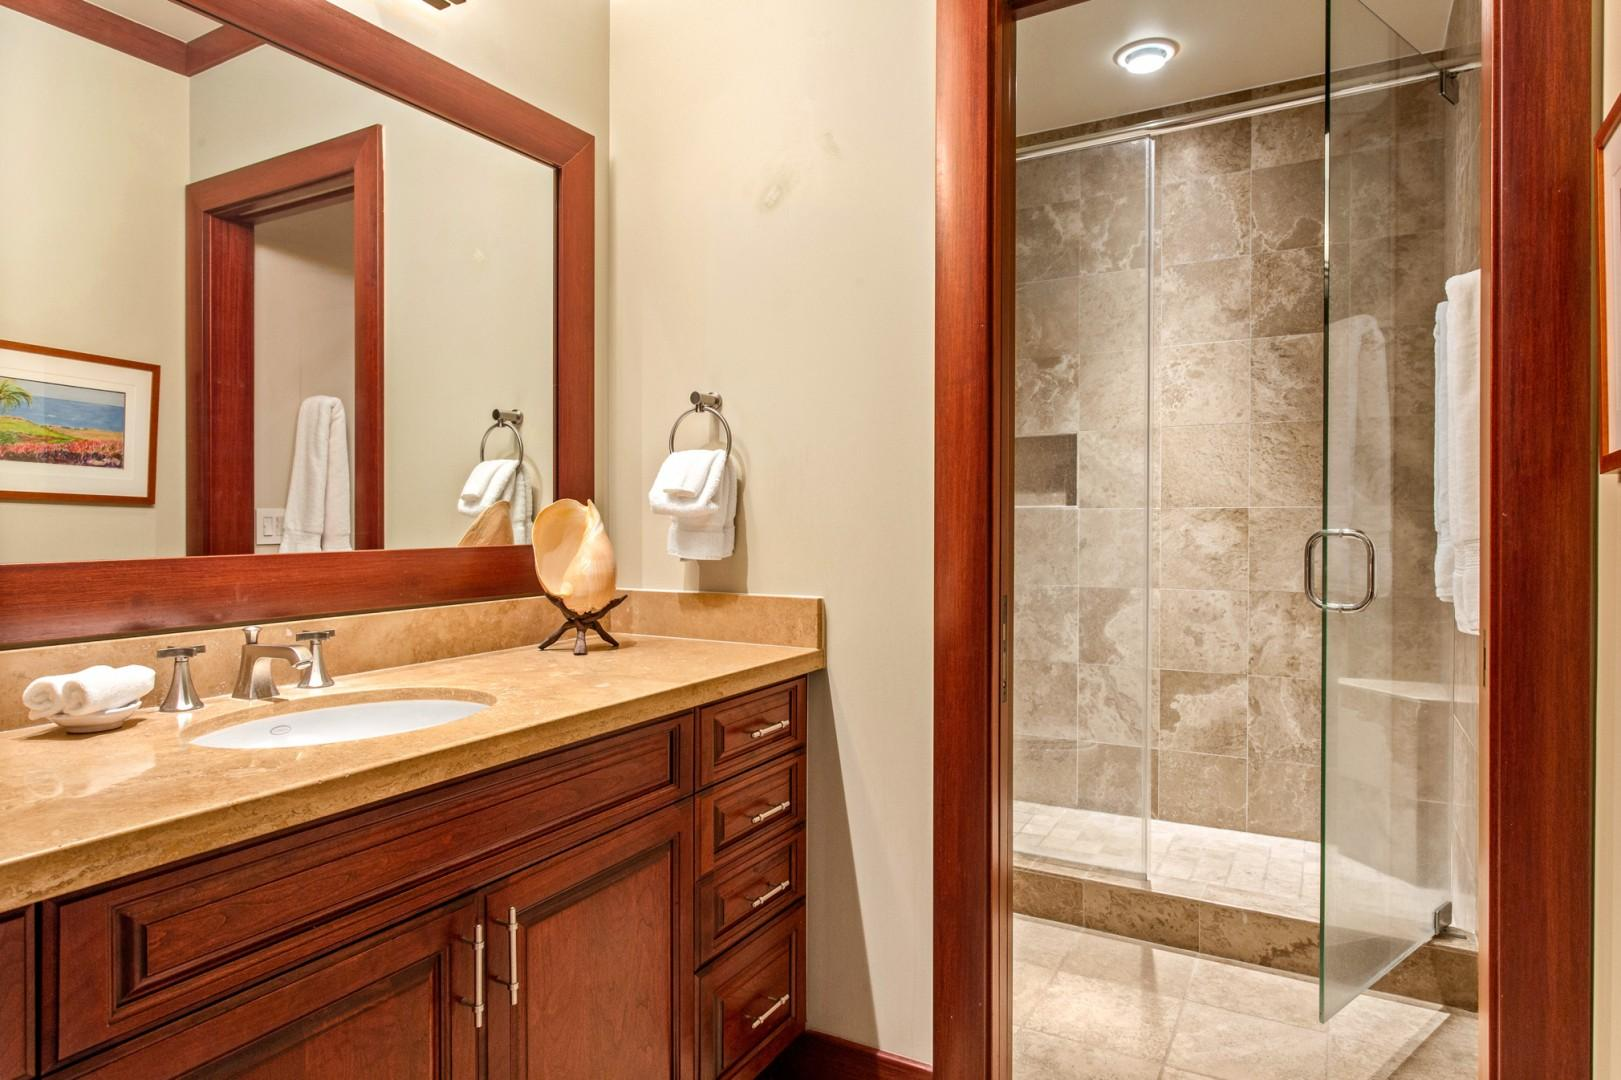 Third bath with glass enclosed shower.